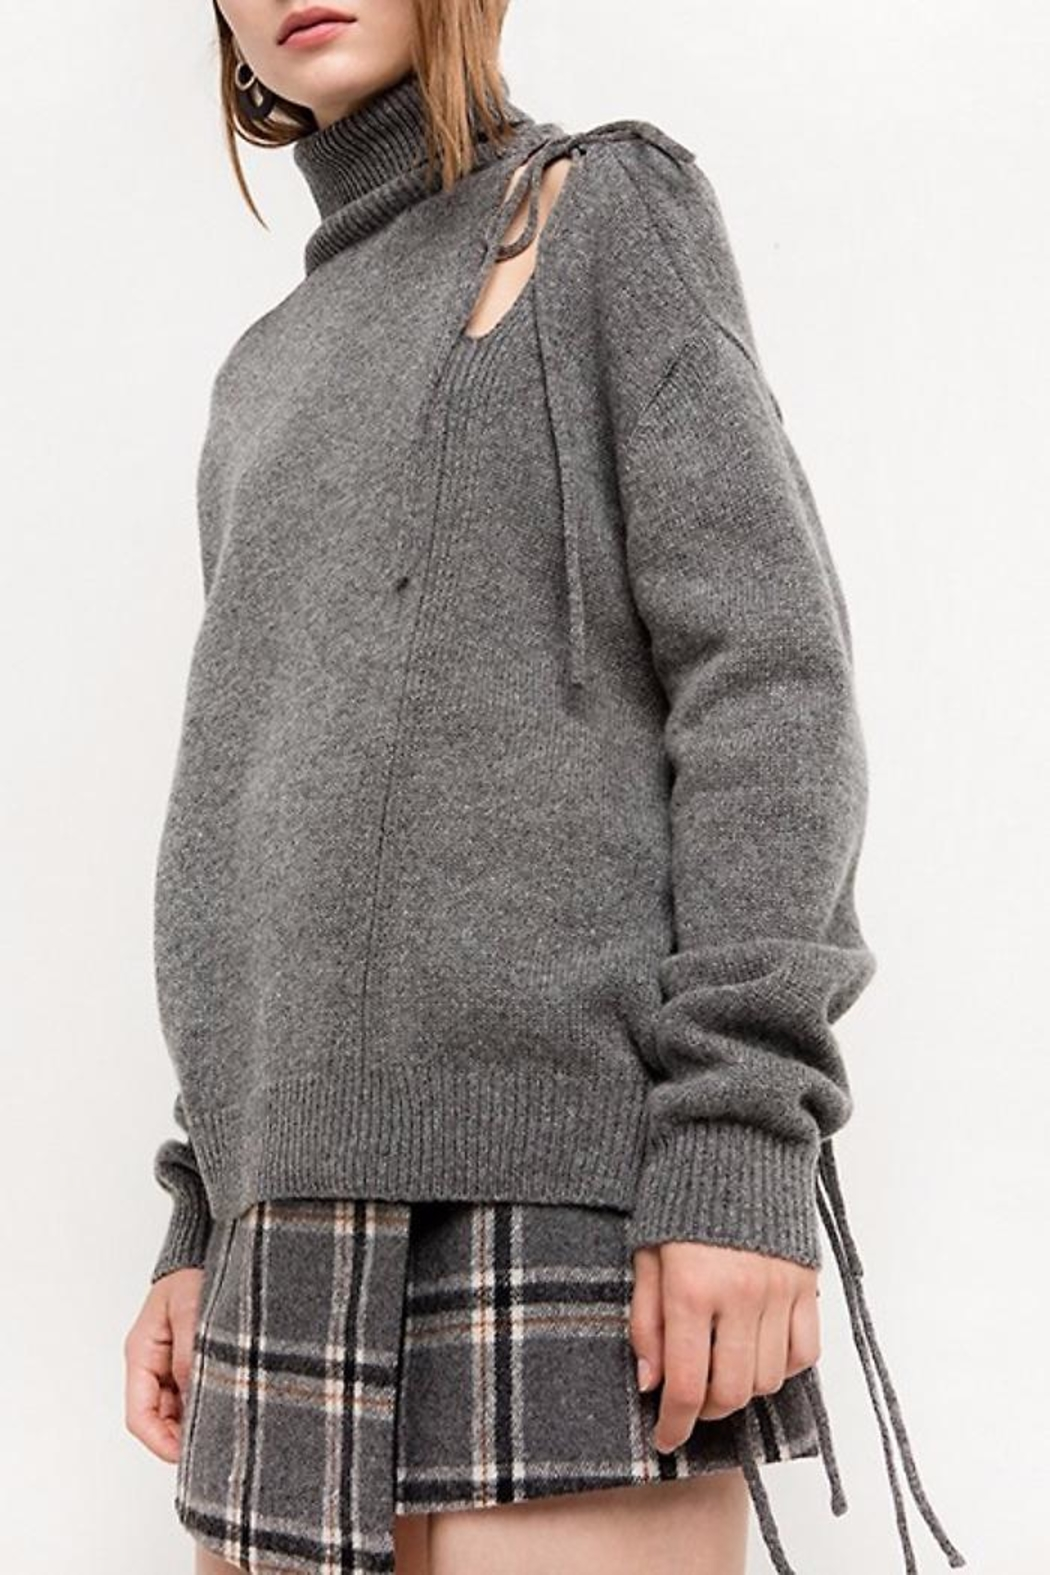 People Outfitter Alice Lace-Up Sweater - Front Full Image